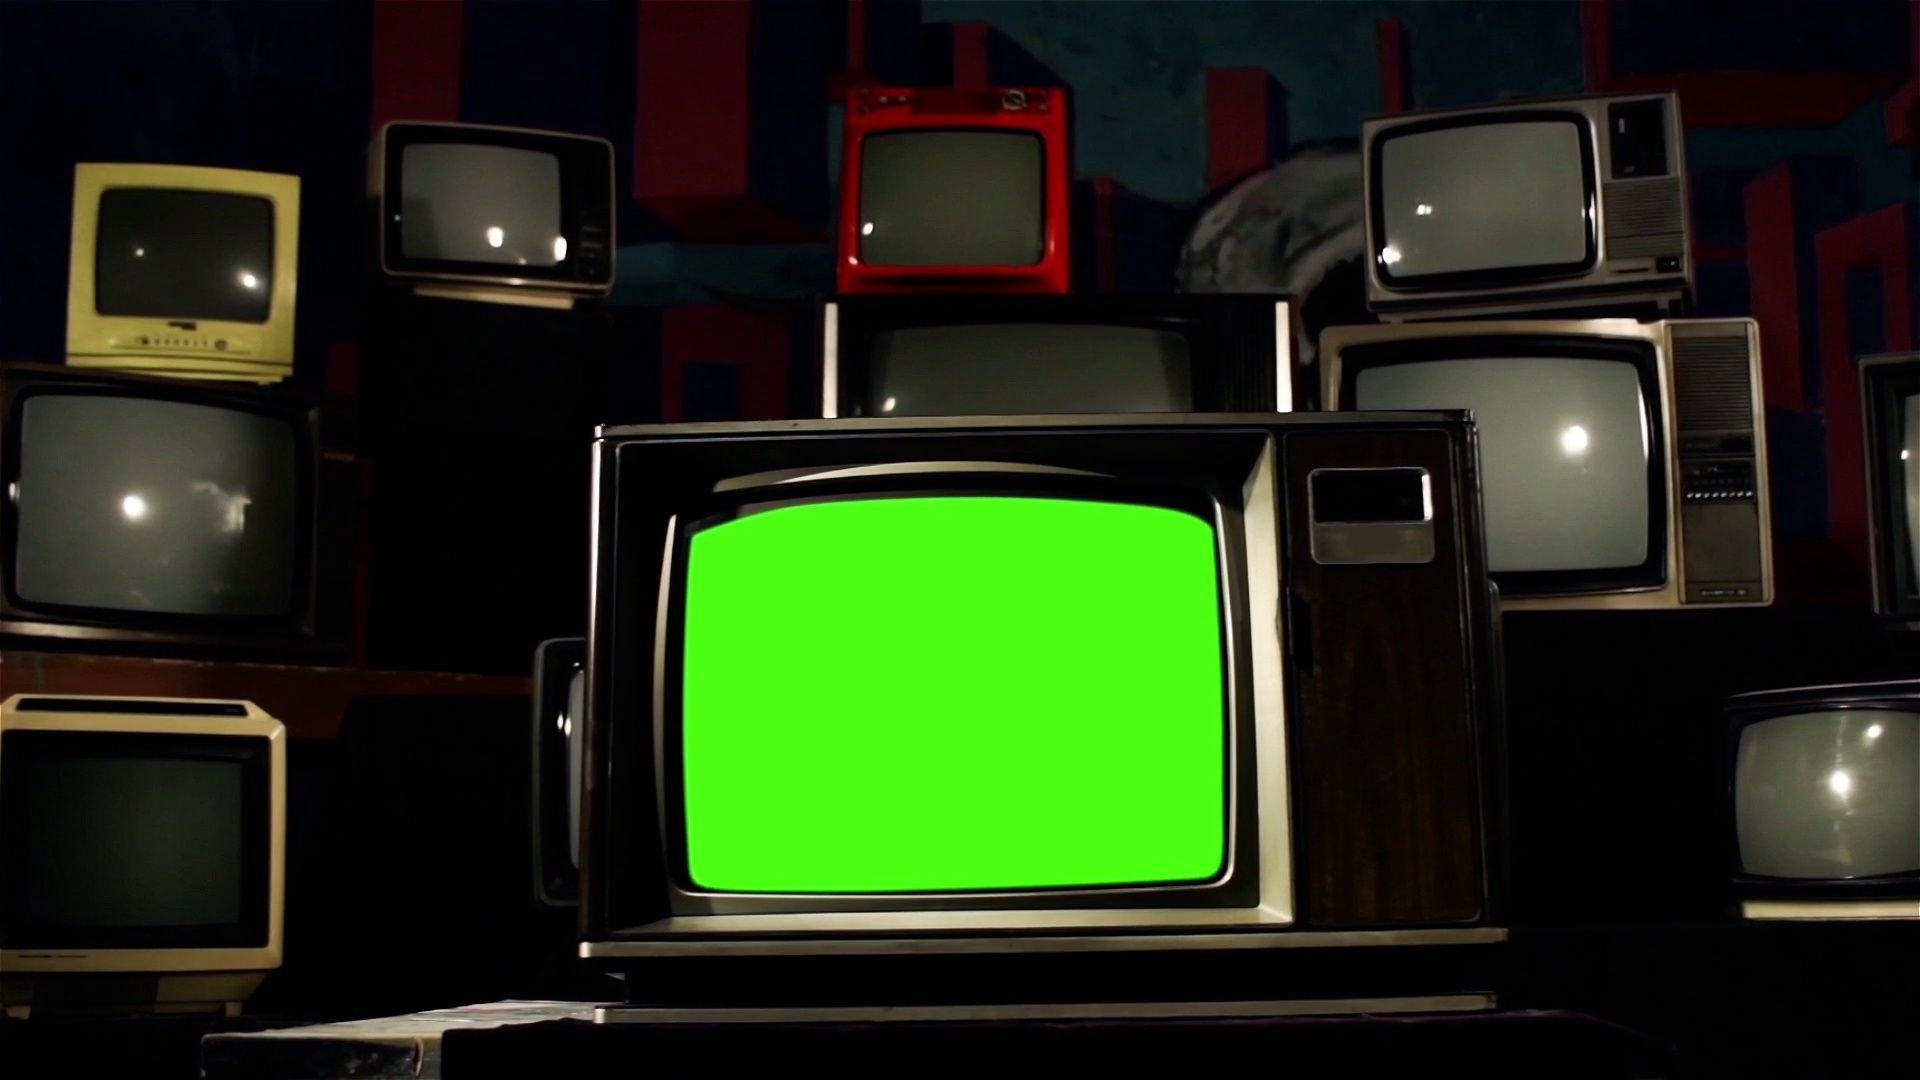 Old Tv With Green Screen In The Middle Of Many Tvs Aesthetics Of The 80s Stock Footage Ad Screen Middle Tv Green Greenscreen Old Tv Retro Tv